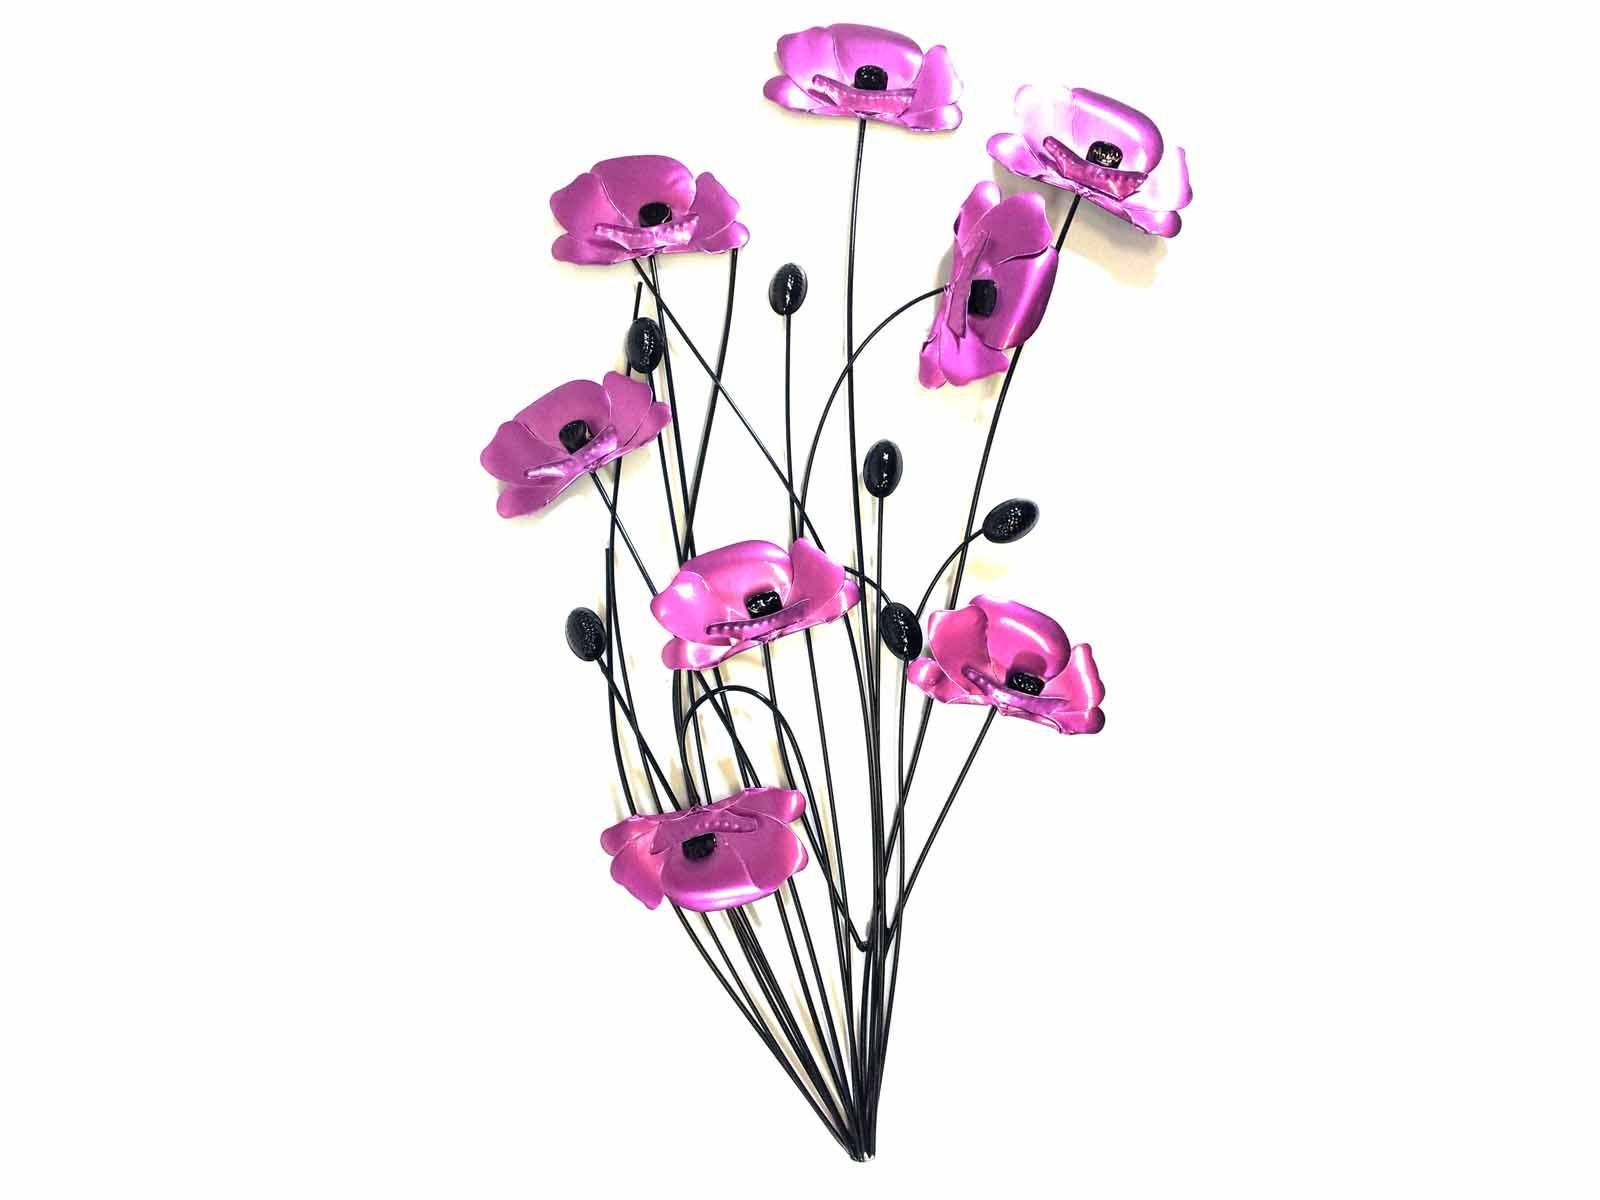 Metal Wall Art – Purple Pink Poppy Flower Bunch For Best And Newest Poppy Metal Wall Art (View 14 of 20)